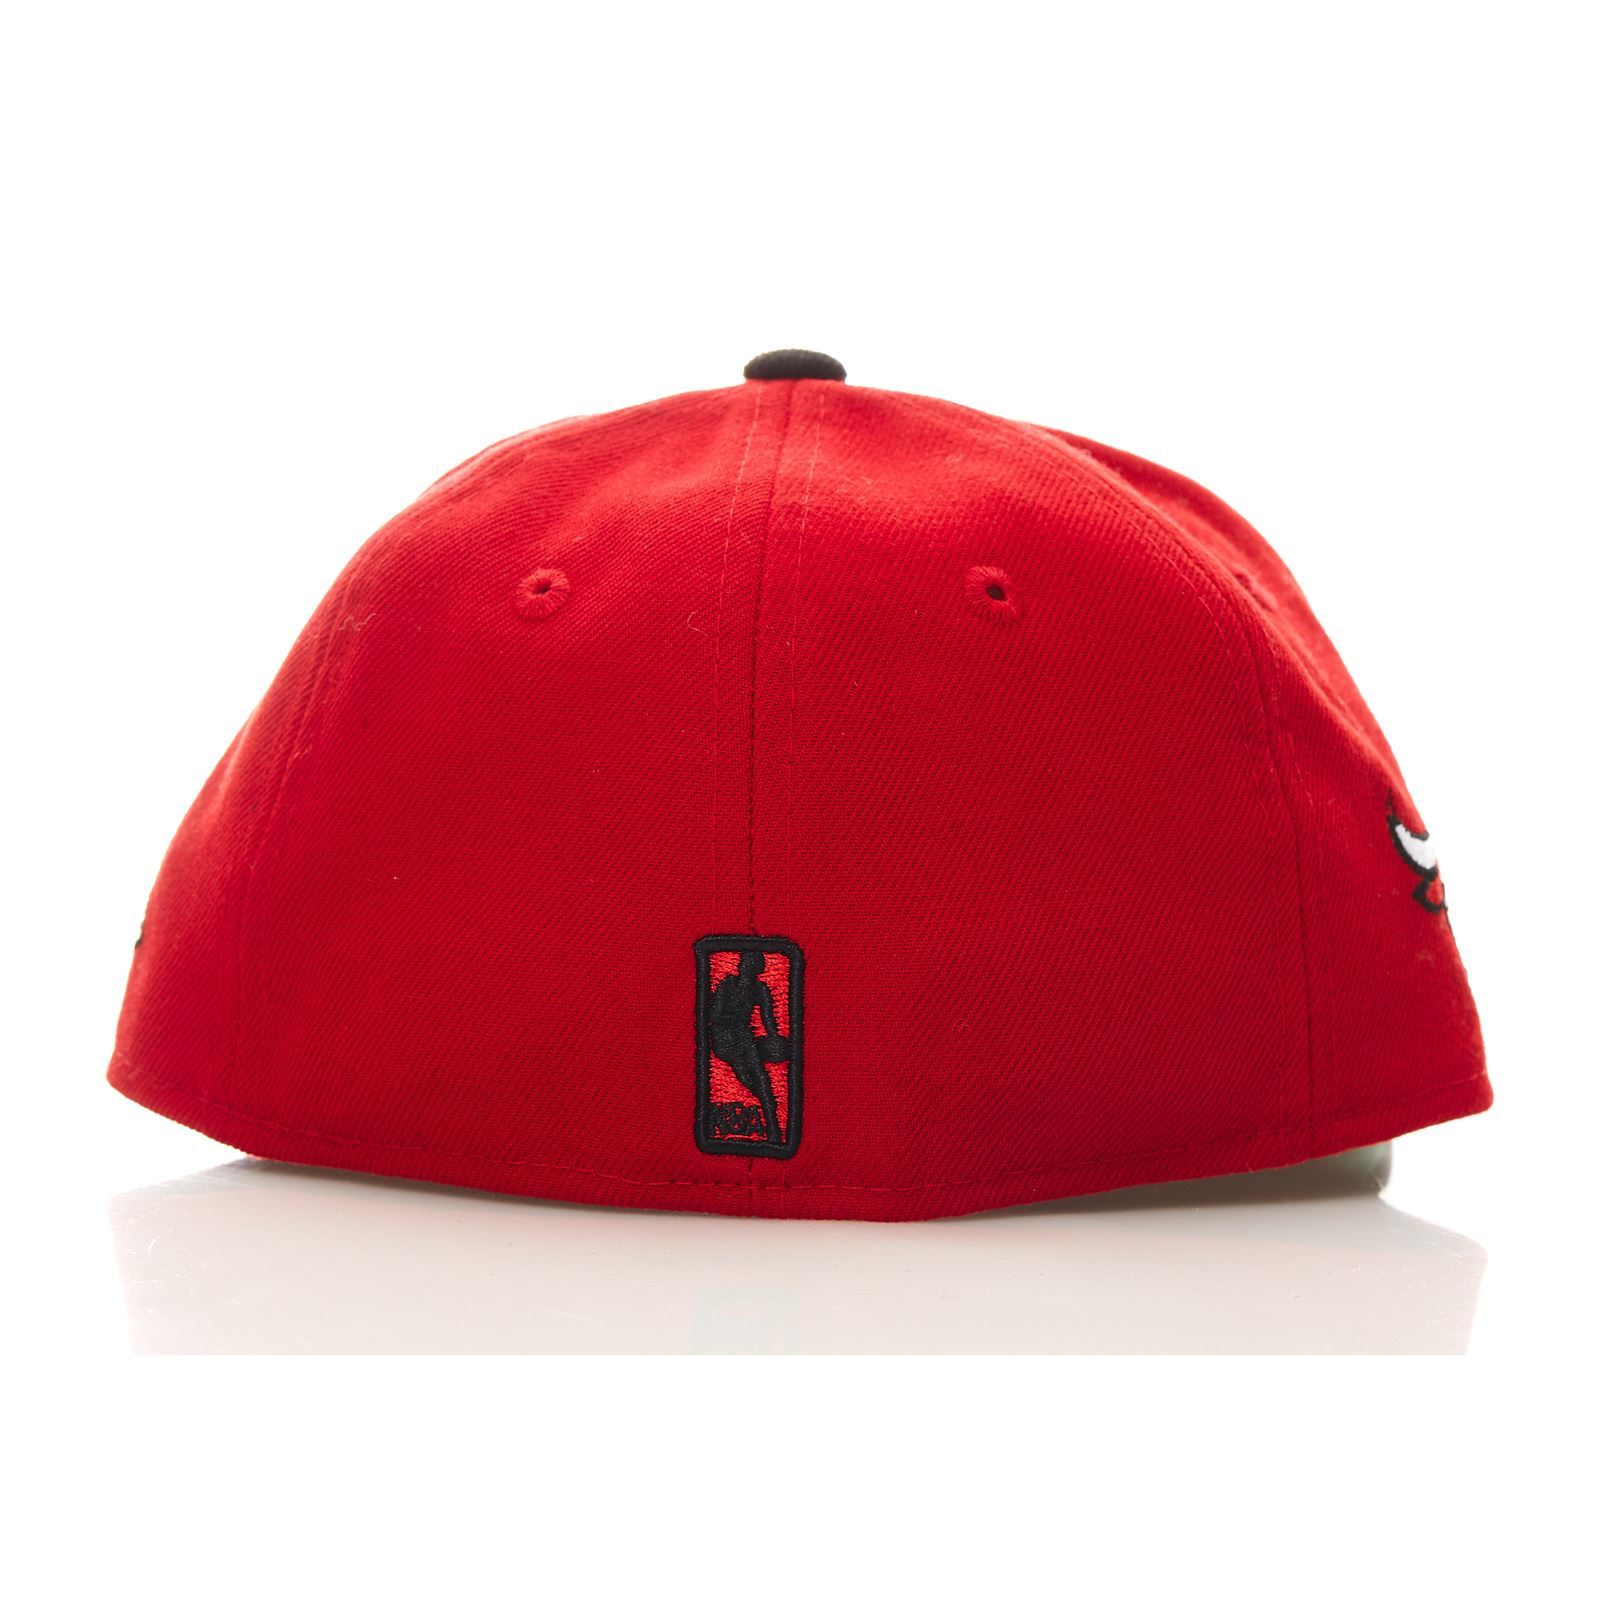 new era chicago bulls casquette rouge brandalley. Black Bedroom Furniture Sets. Home Design Ideas